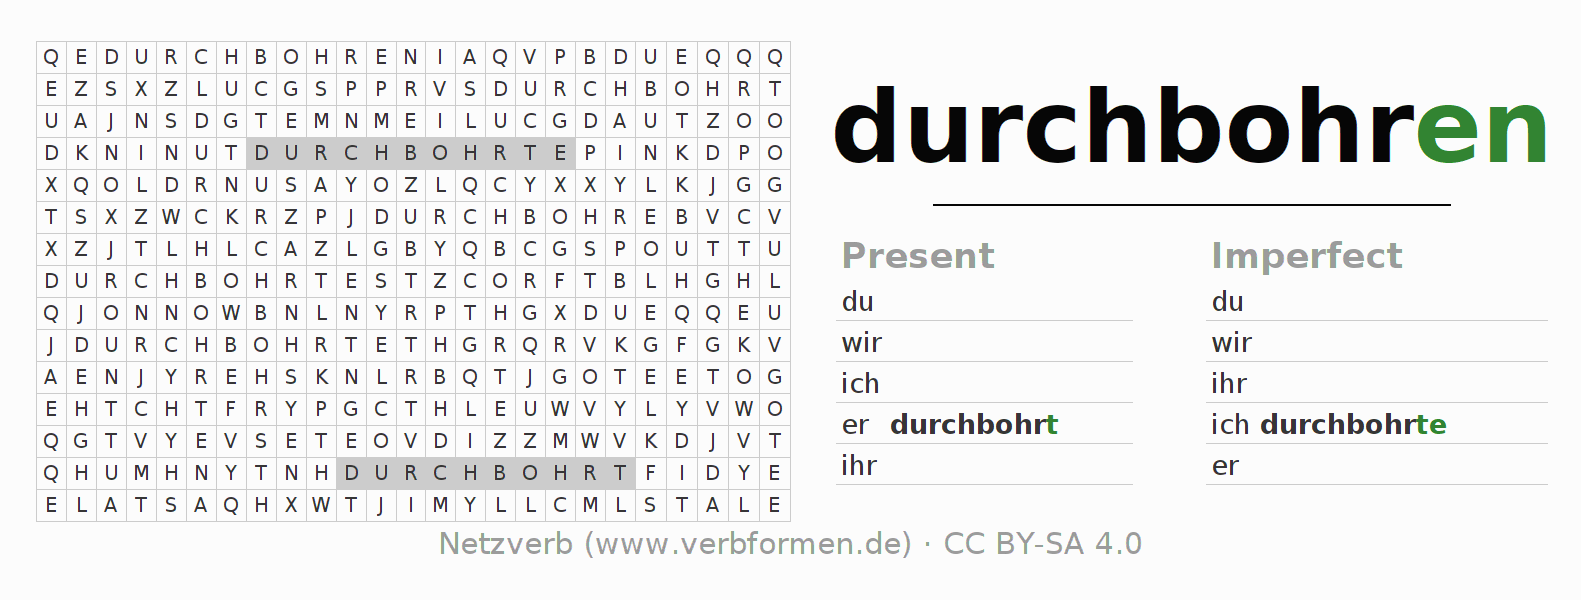 Word search puzzle for the conjugation of the verb durchbohren